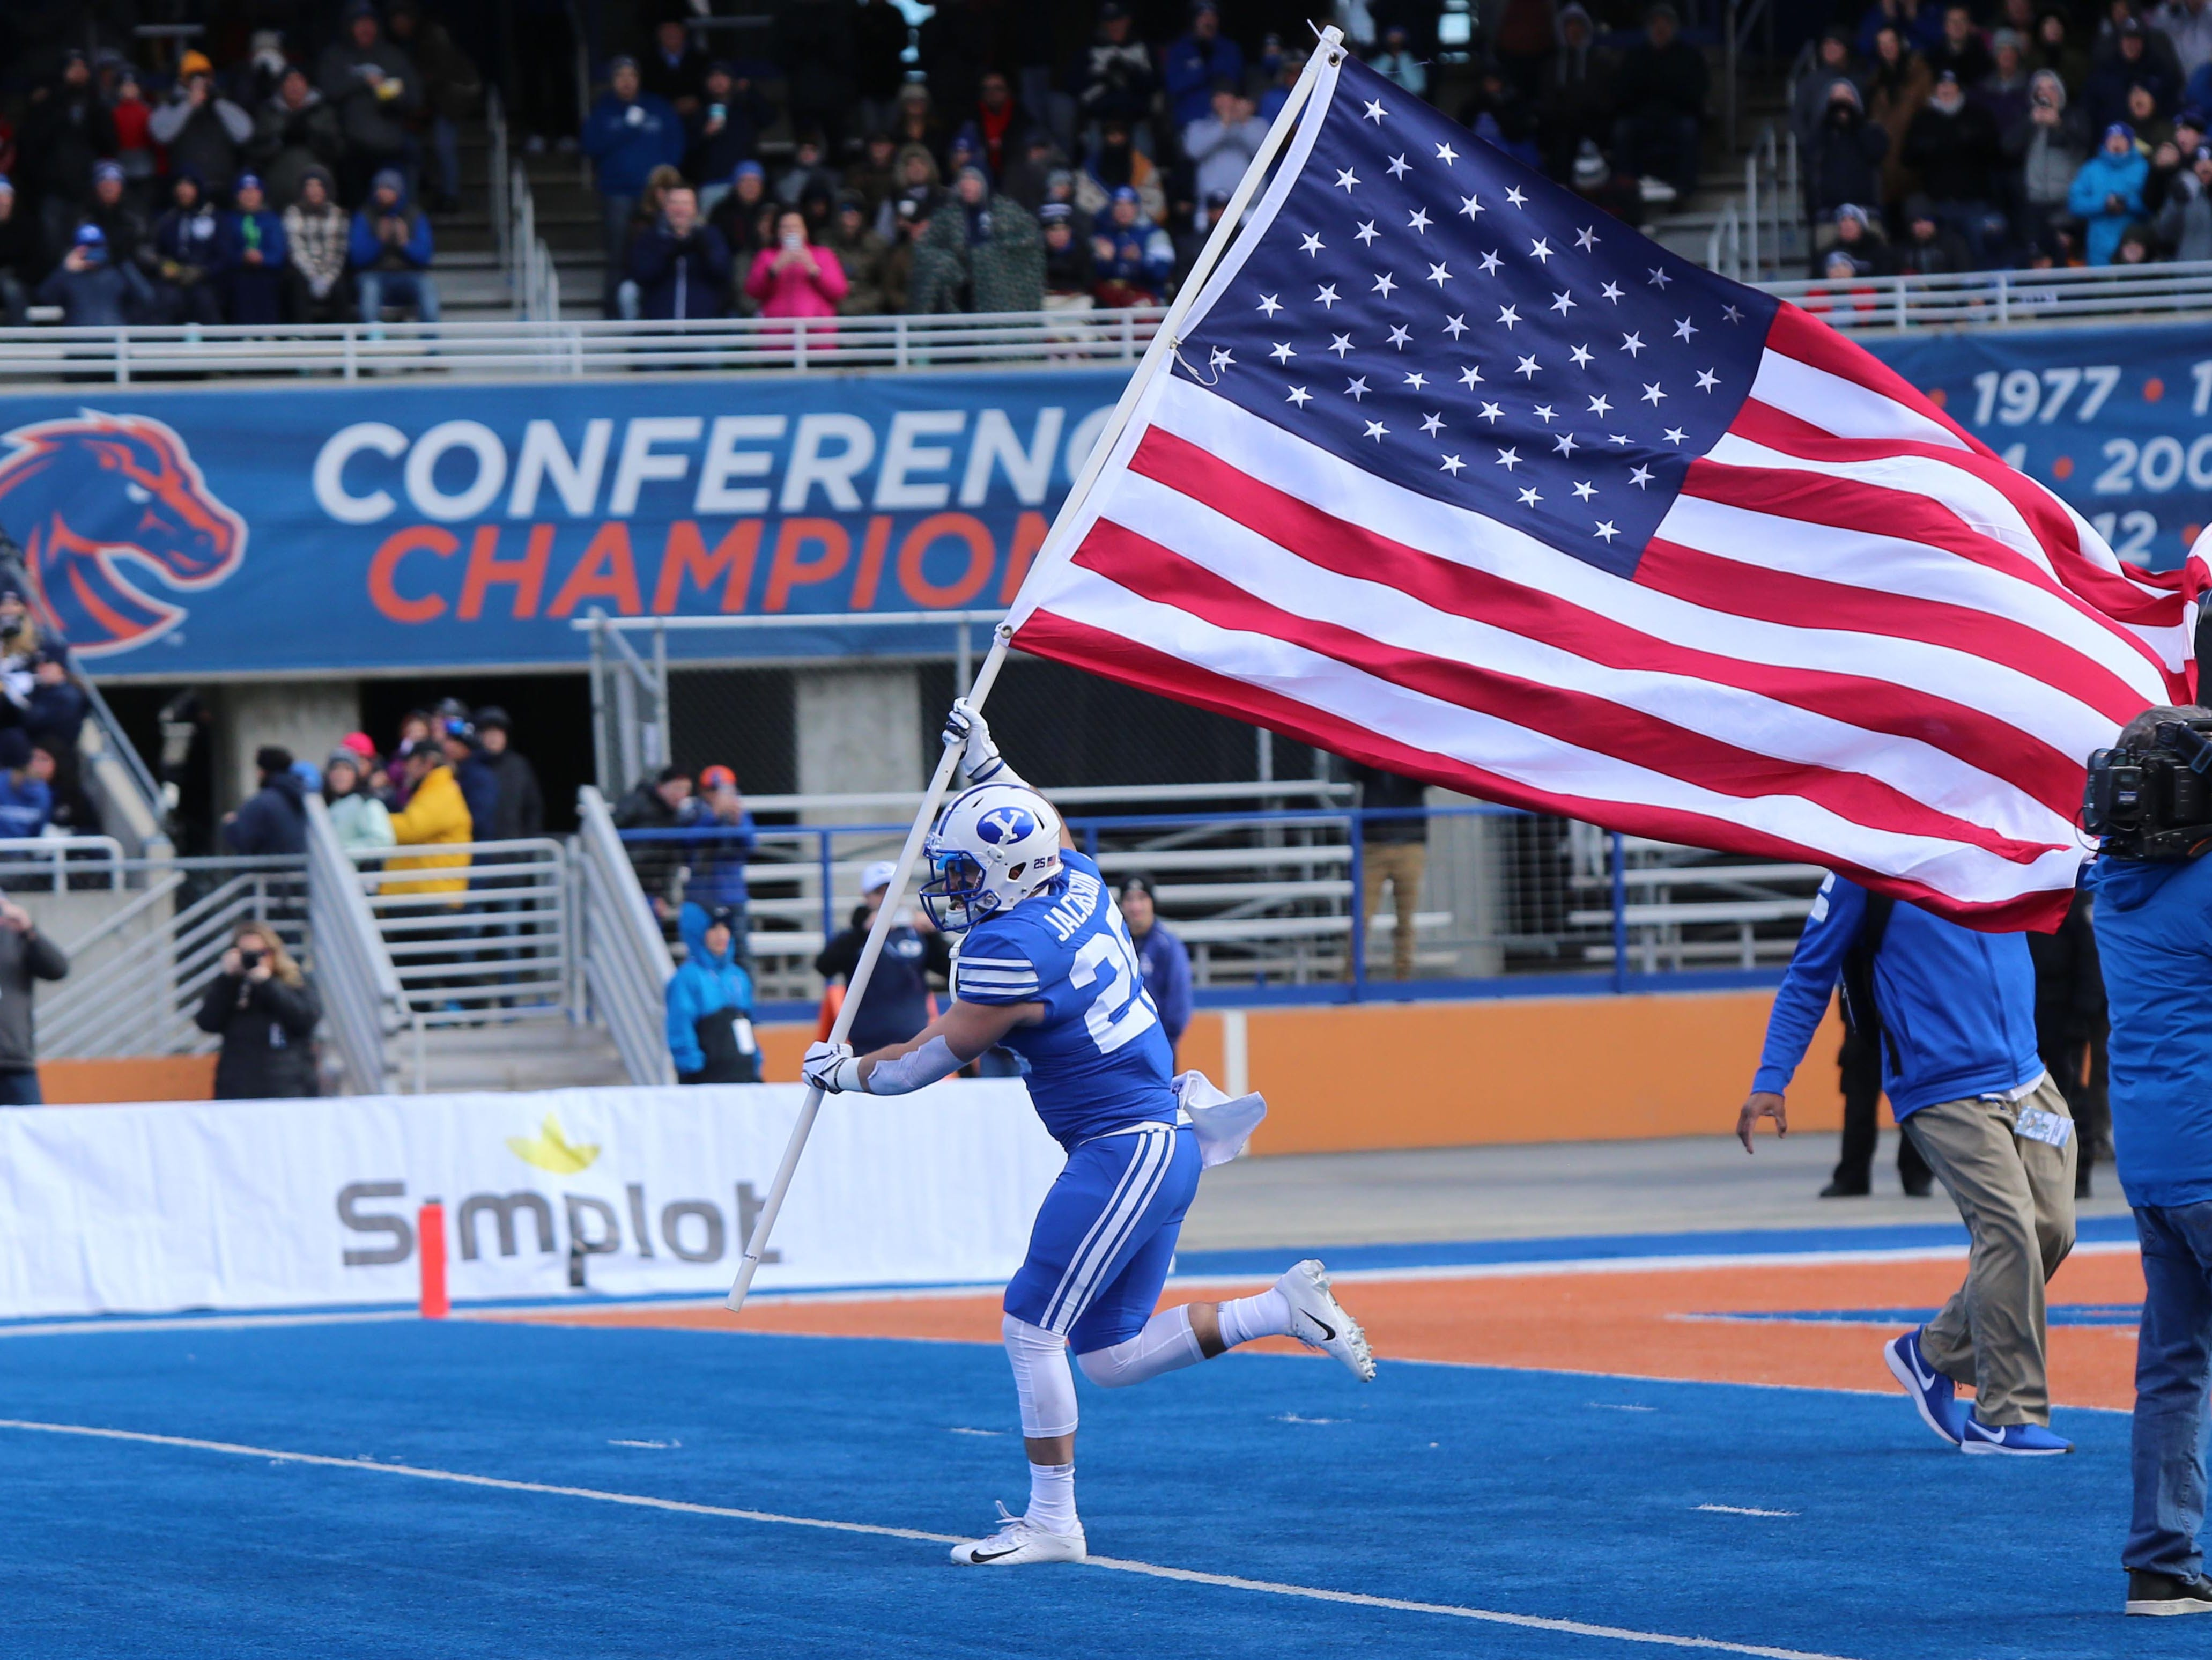 Dec 21, 2018; Boise, ID, United States; Brigham Young Cougars running back Tanner Jacobson (25) carries the American flag onto the field prior to the first half  of play versus the Western Michigan Broncos at the 2018 Potato Bowl at Albertsons Stadium. Mandatory Credit: Brian Losness-USA TODAY Sports